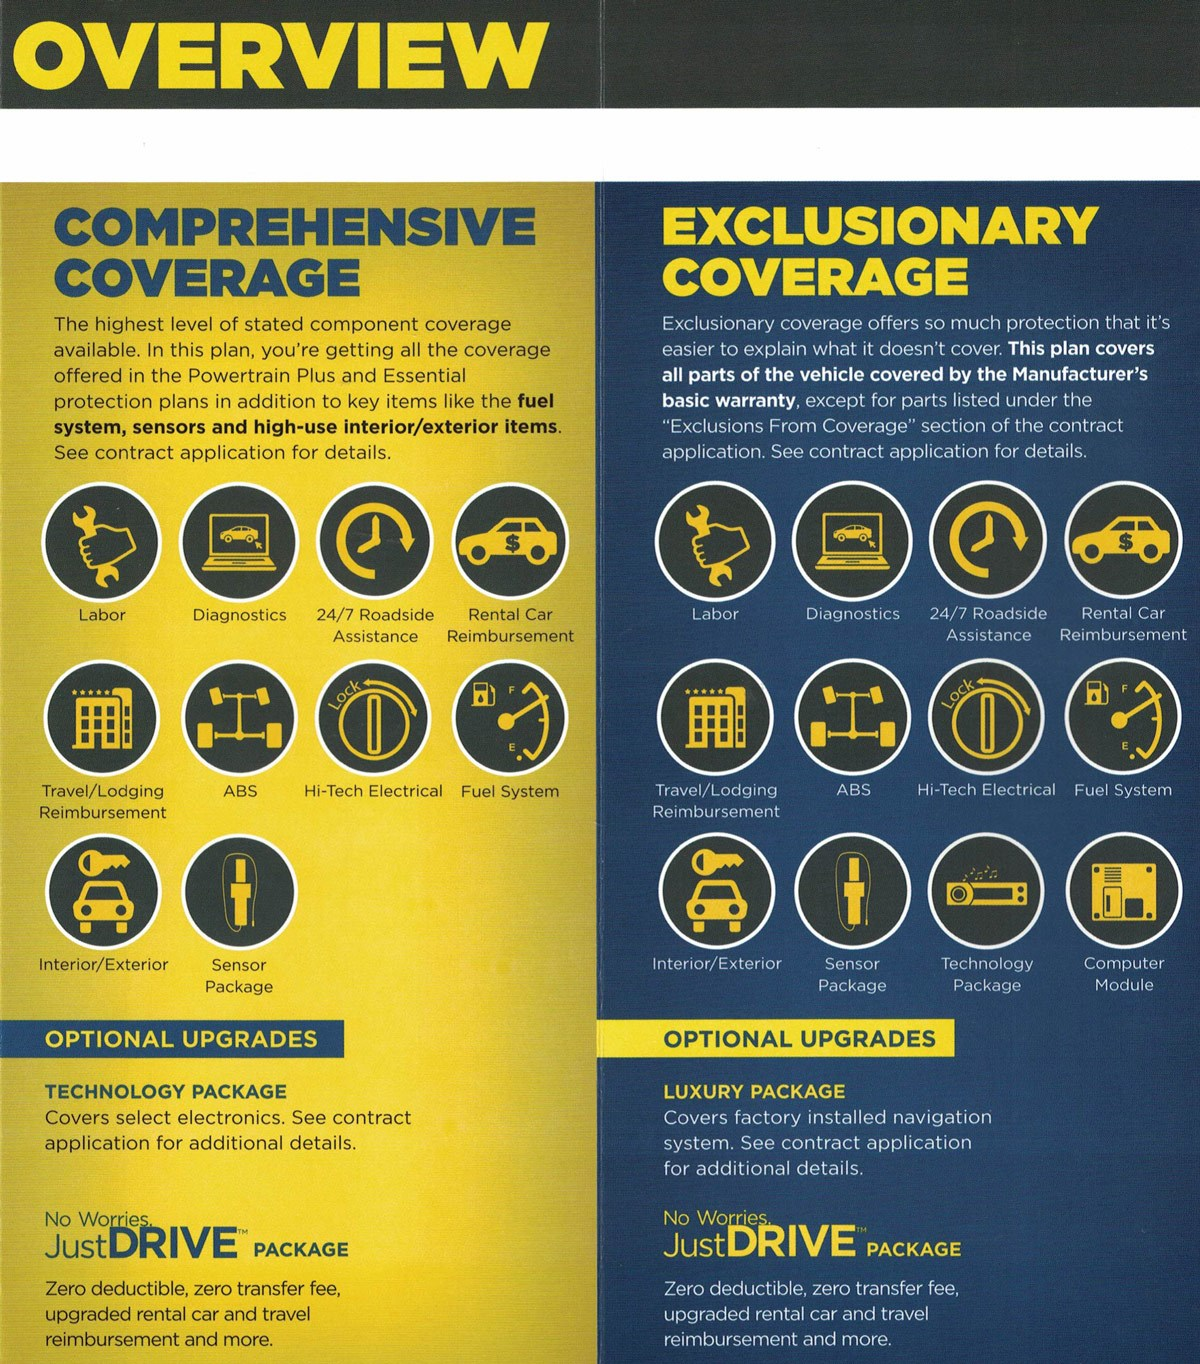 Comprehensive Coverage = Power train plus coverage + fuel system ,sensors, and high used exterior interior items | Exclusionary Coverage = covers all manufacture covered items except exclusion from coverage on the contract app